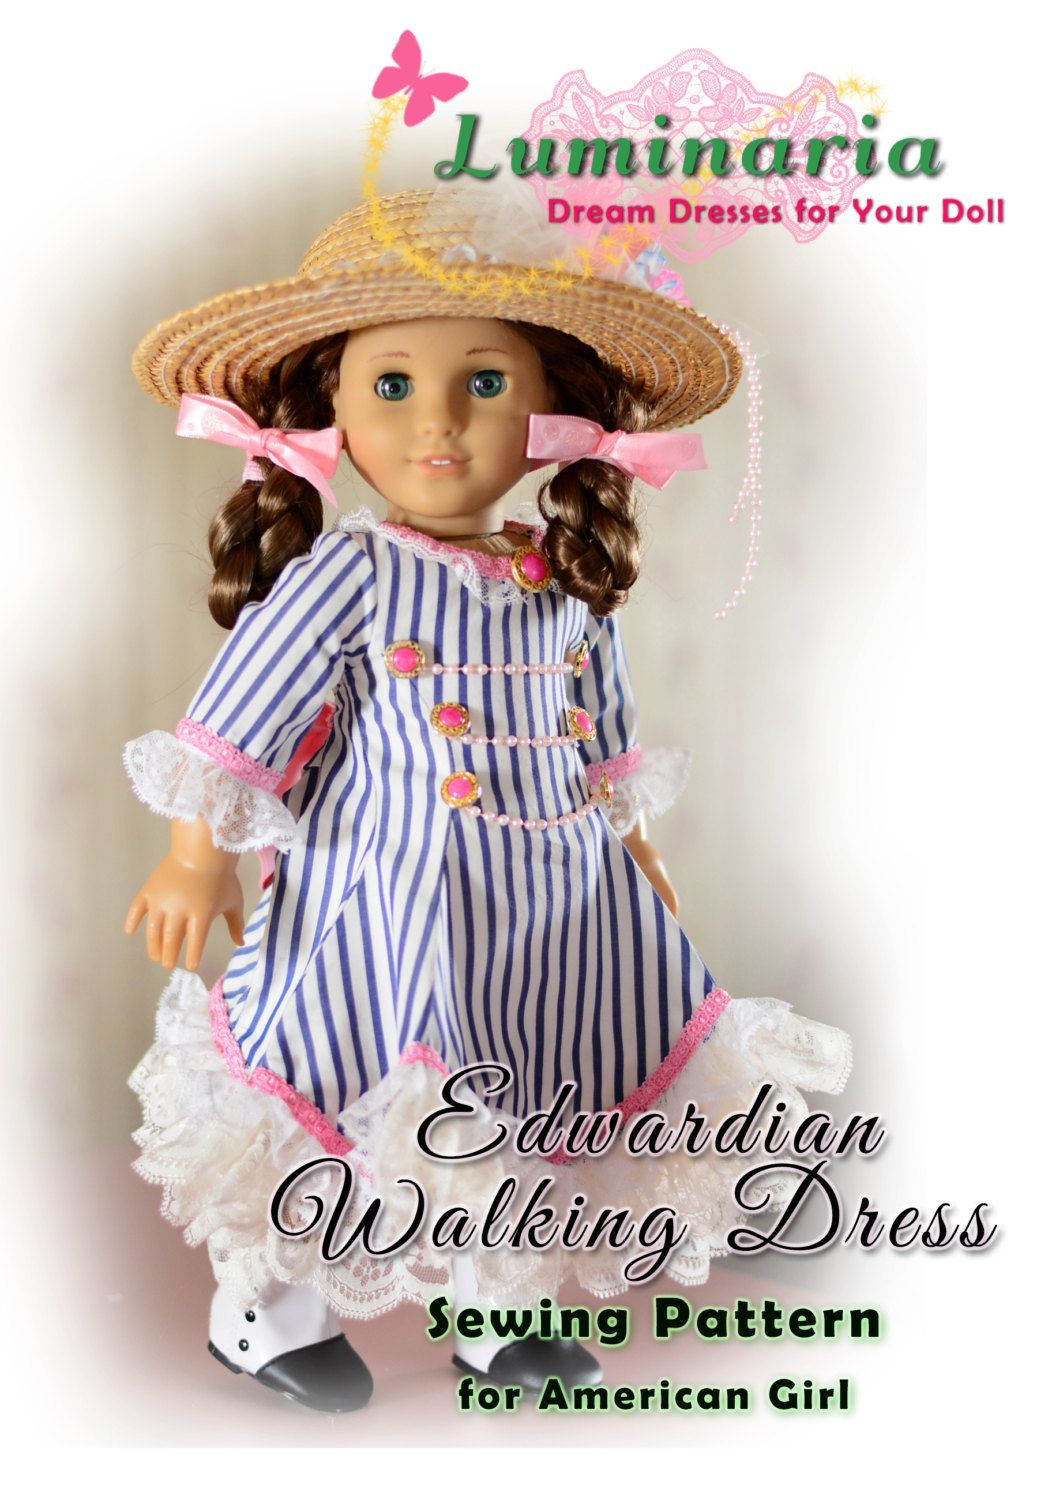 Doll Clothes Pattern in PDF To Make Edwardian Walking Dress, Outfit ...